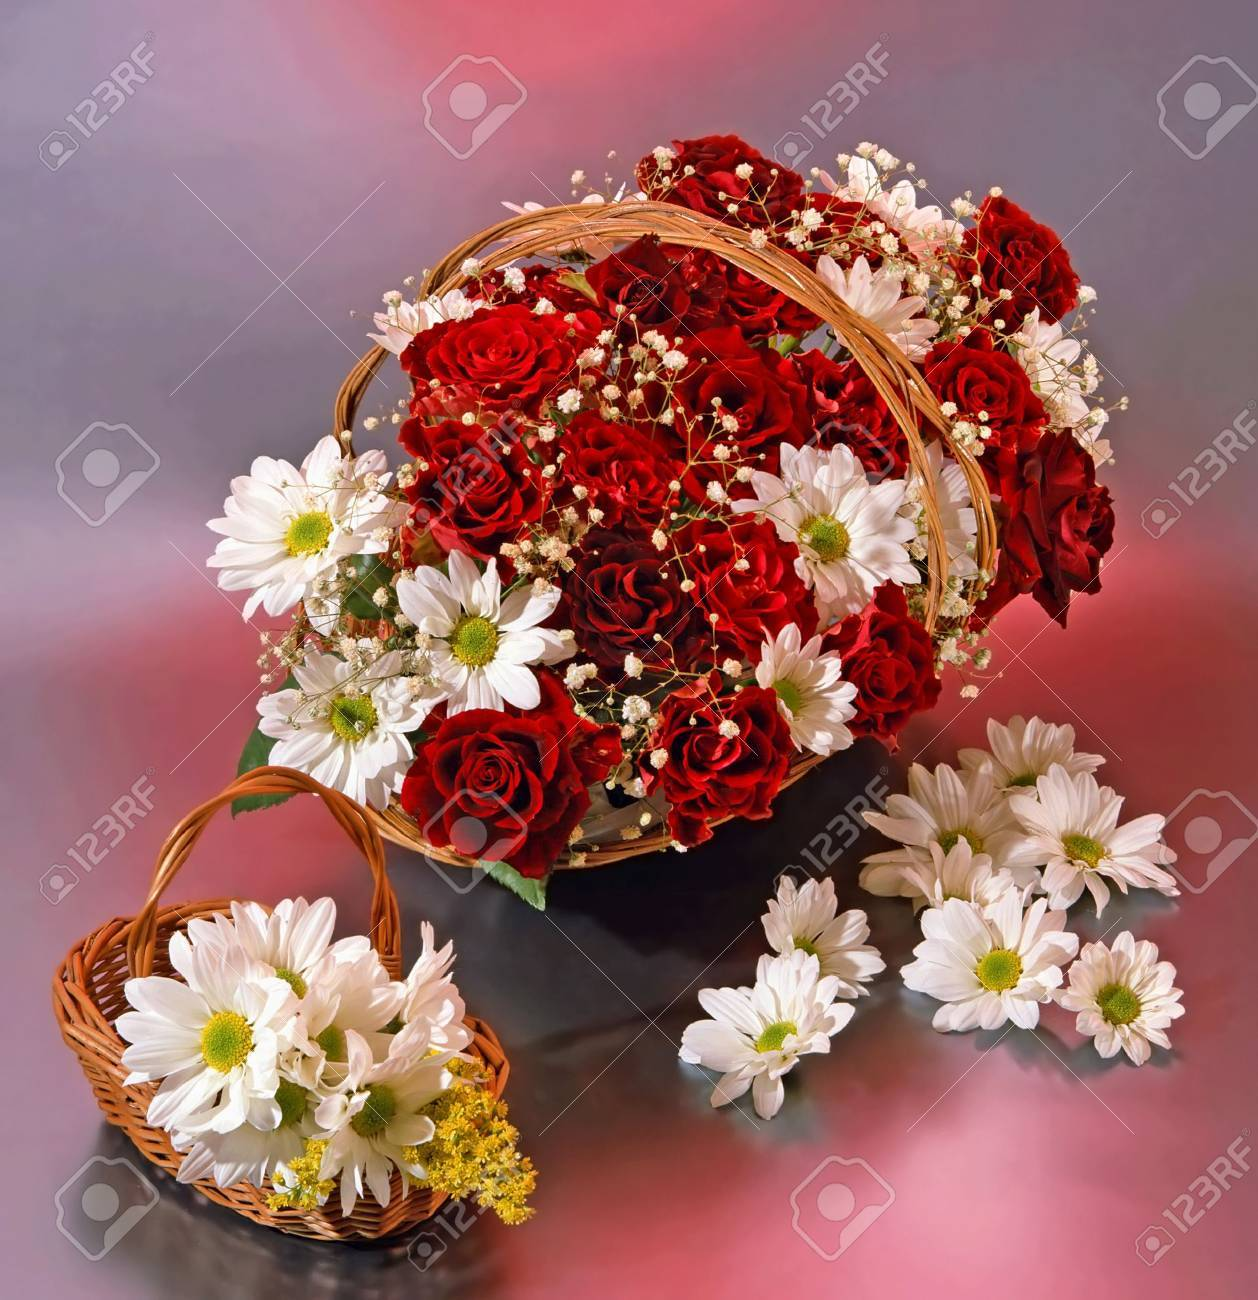 two baskets with red roses an magueritas - 3662136